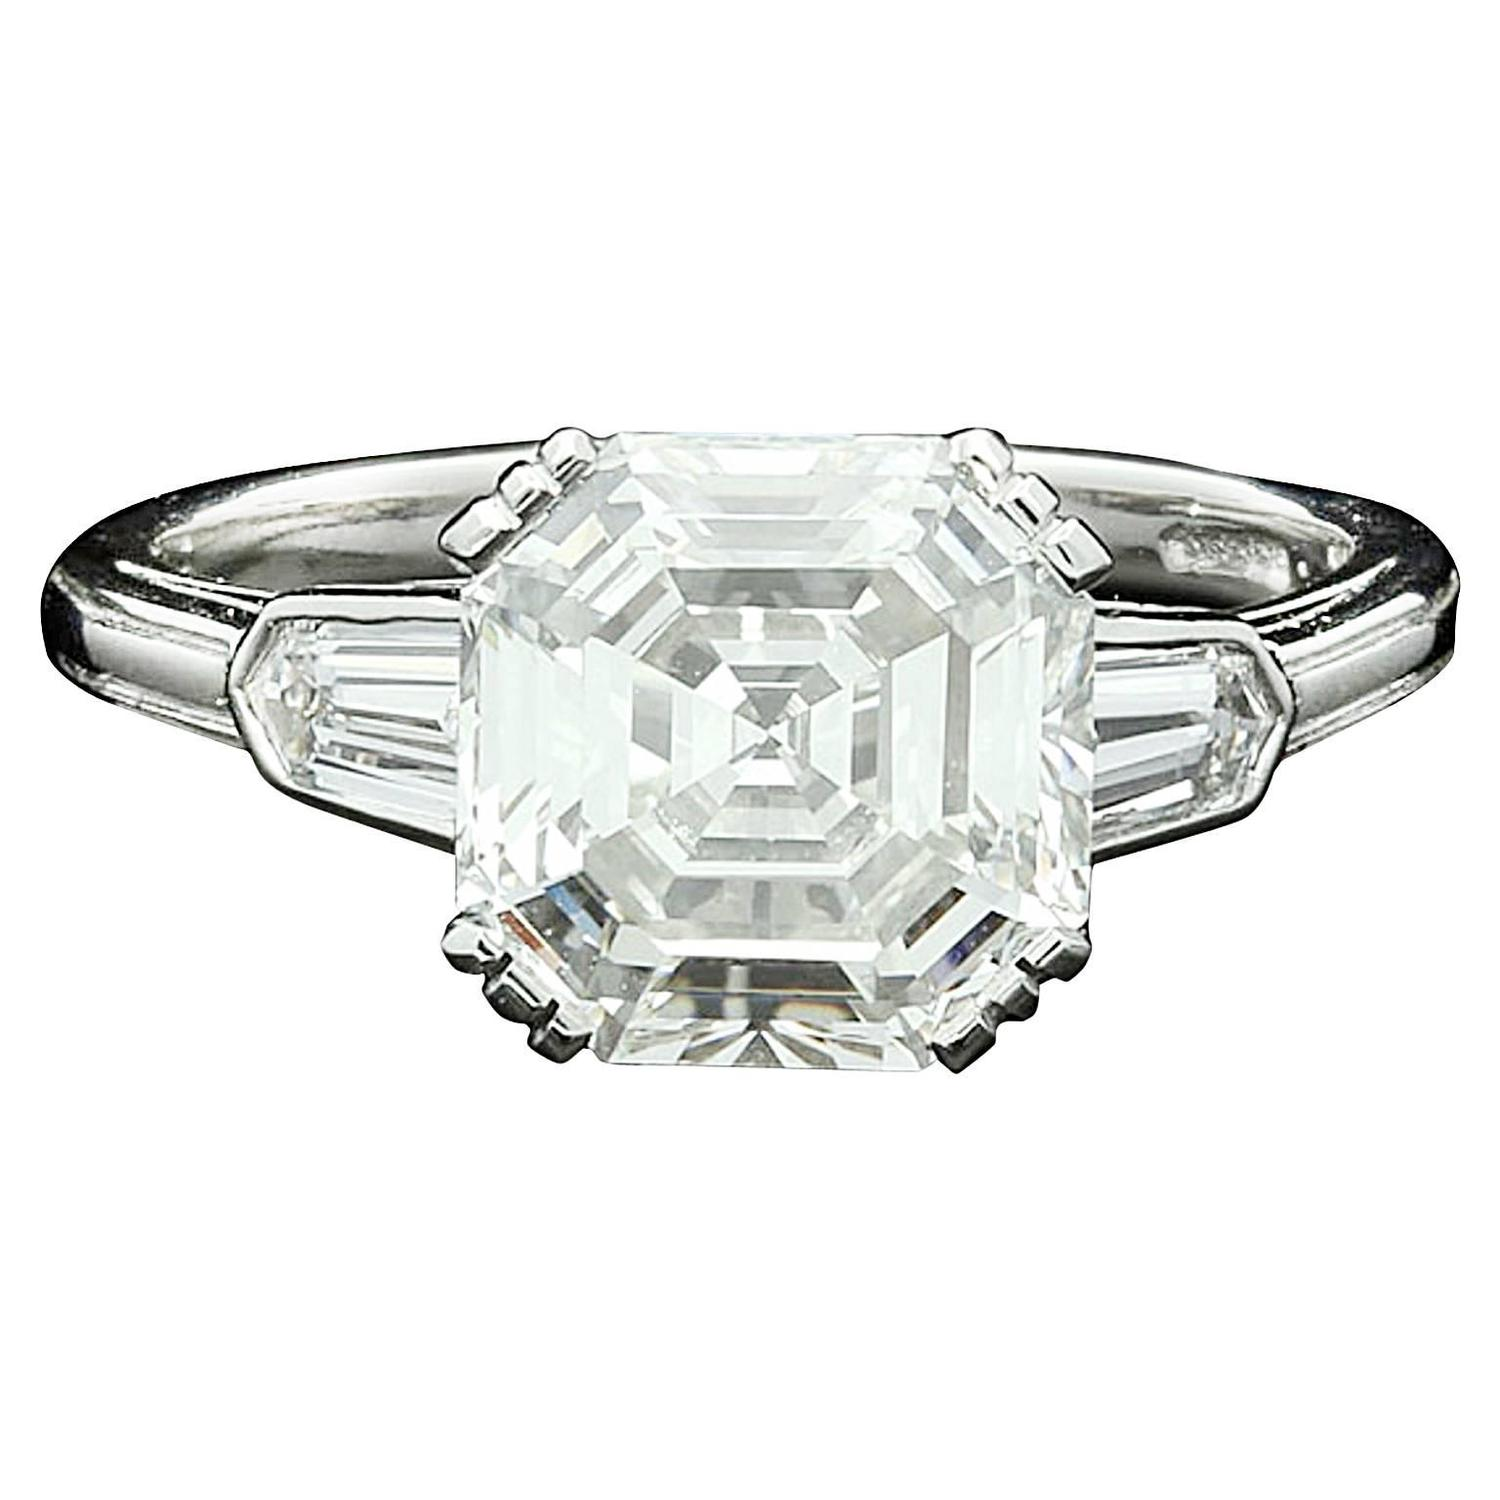 3 07 Carat Asscher Cut Diamond Solitaire Ring With Bullet